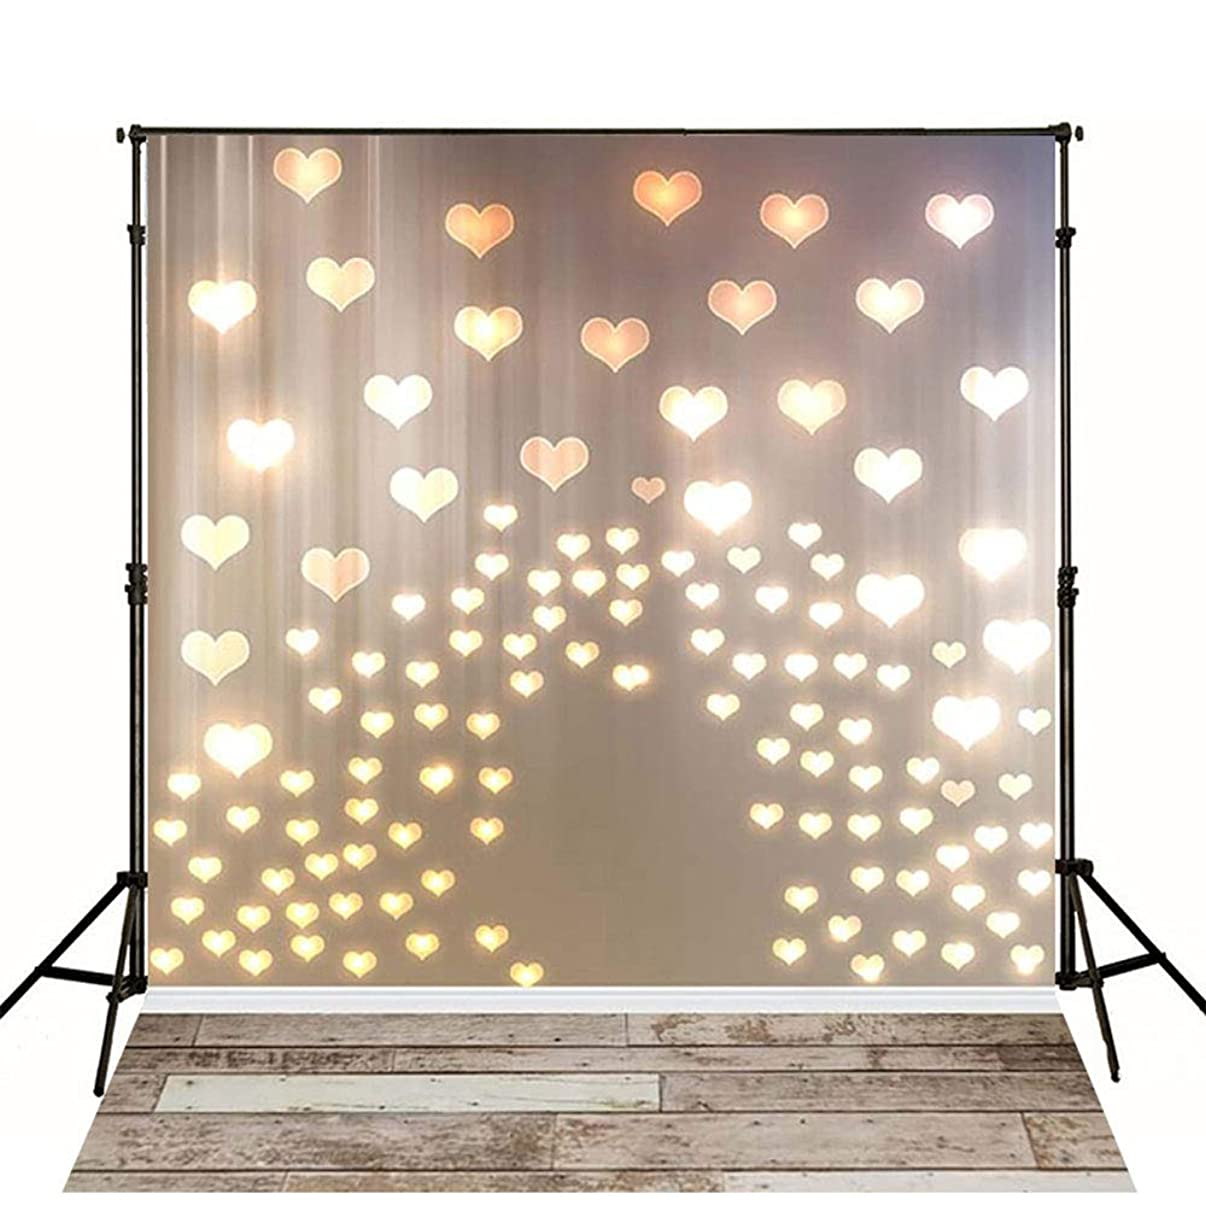 MEHOFOTO 5x7ft Newborn Photography Backdrops Wood Floor Lighting Love Heart Photo Background for Valentine's Day Studio Props